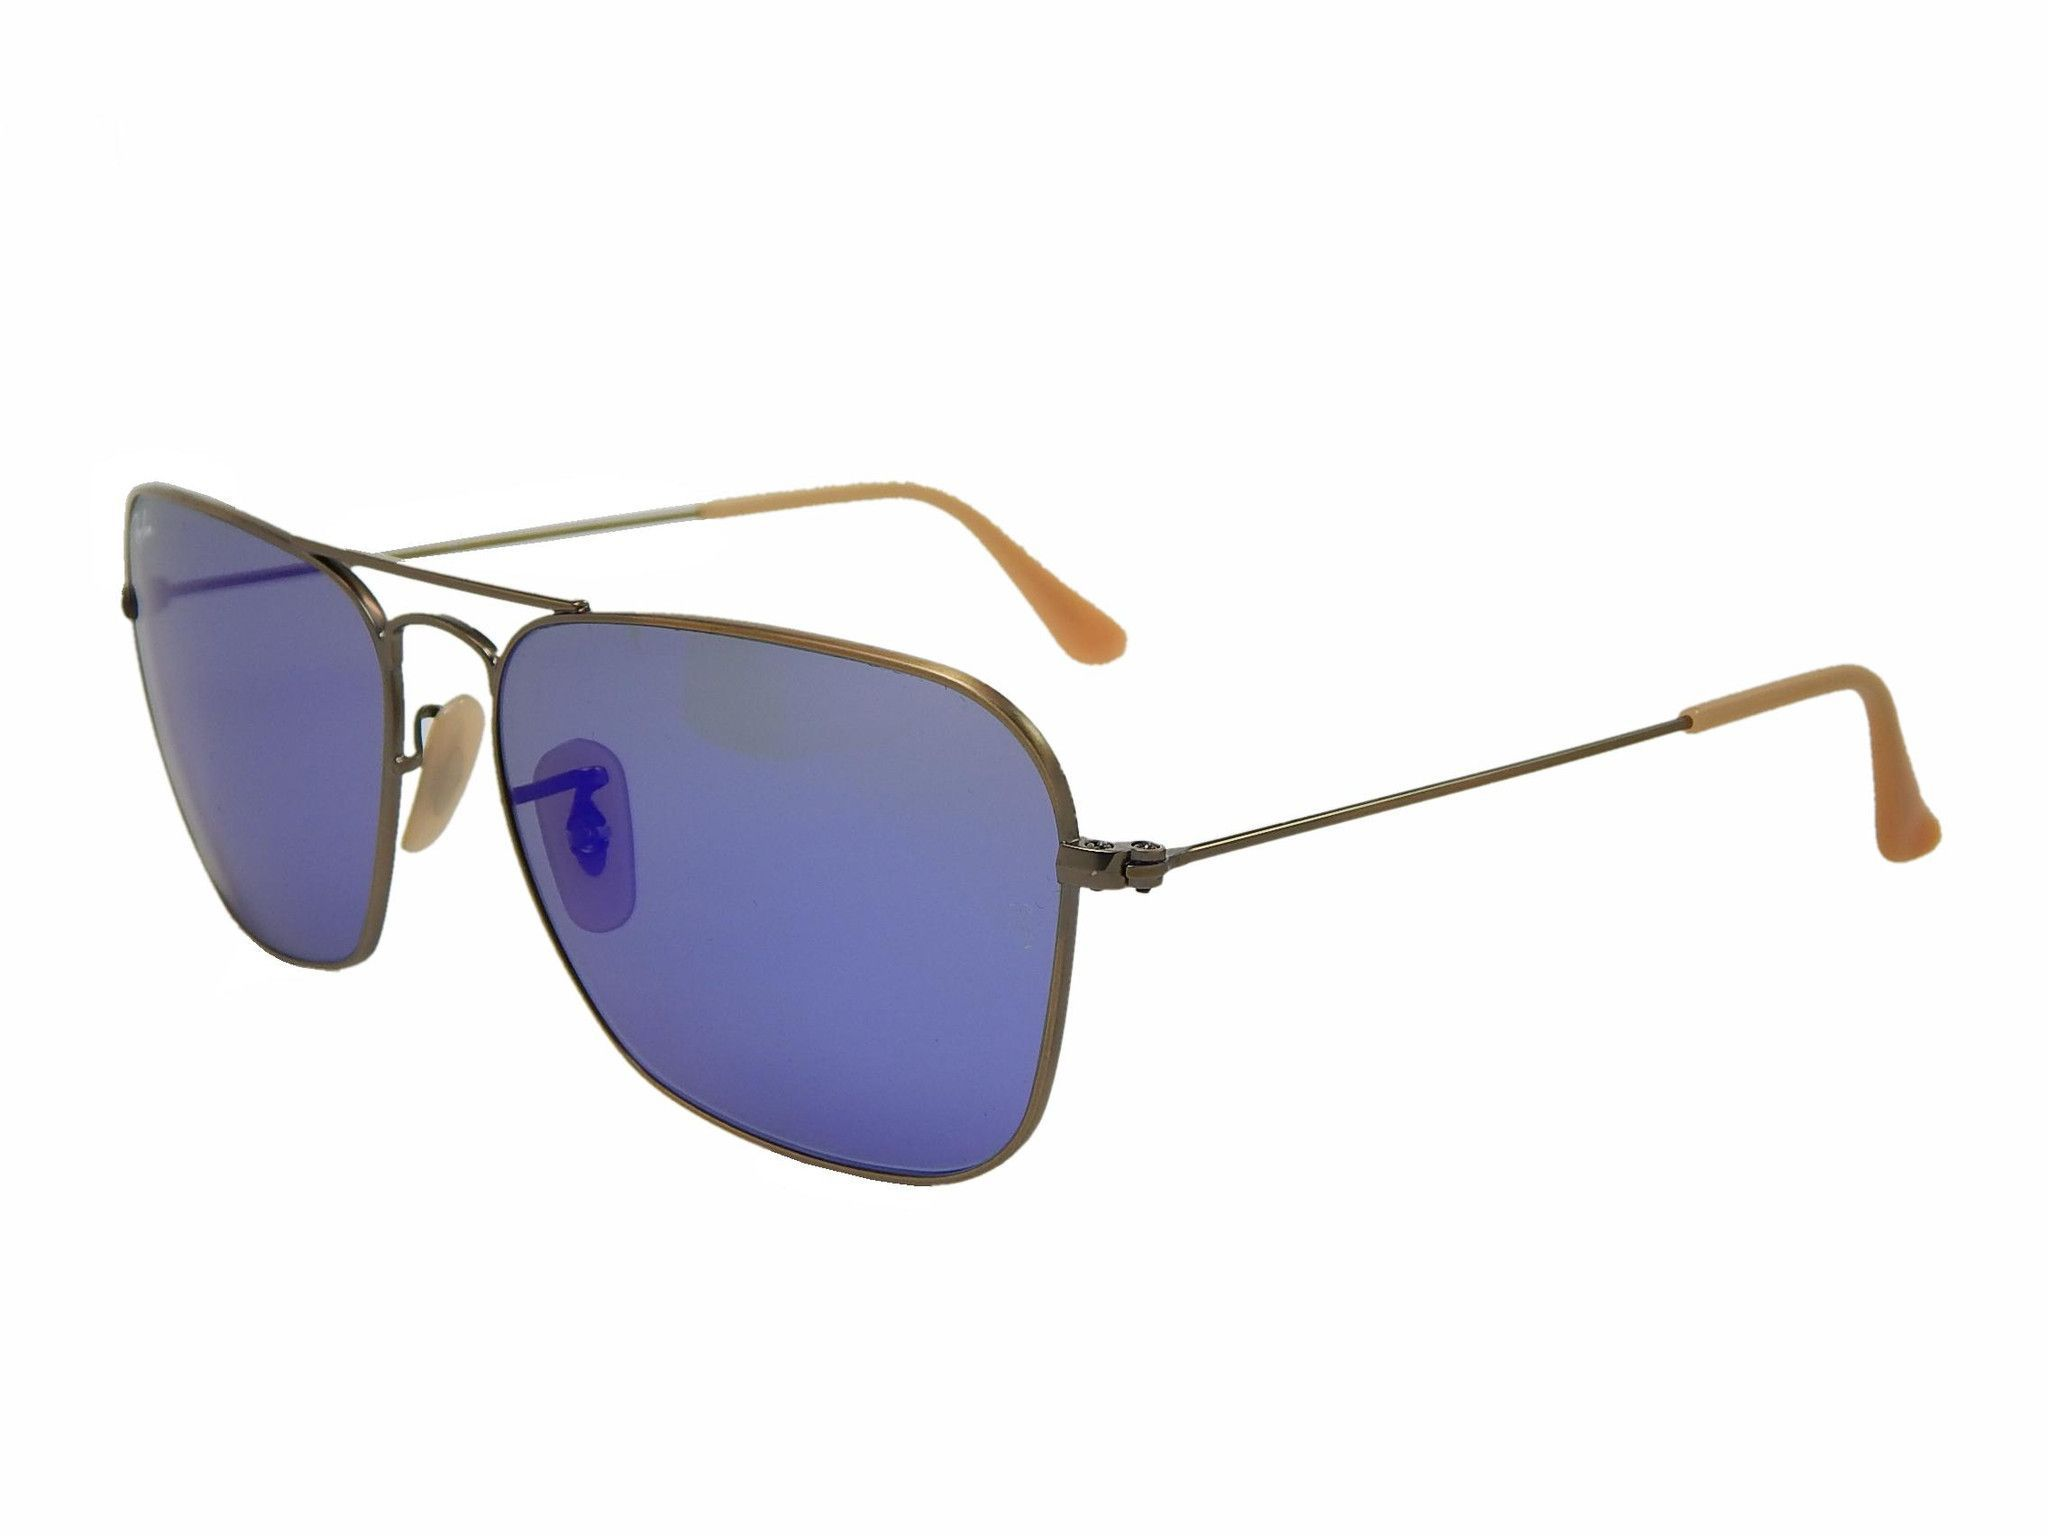 Ray Ban Caravan RB3136 167 68 Bronze  Blue Mirror 58mm Sunglasses ... 63496687d7